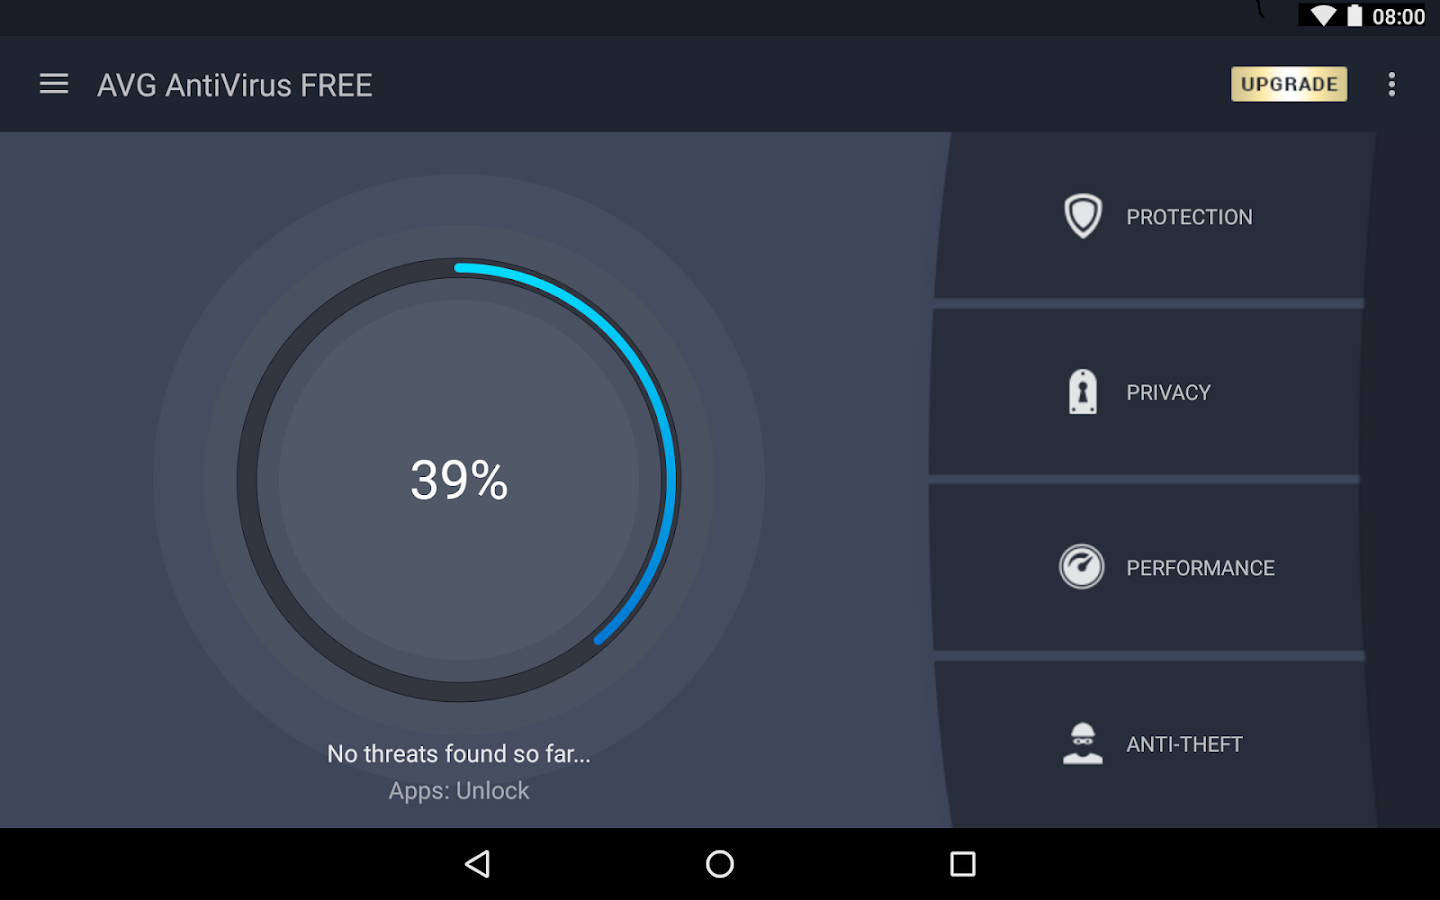 AVG AntiVirus FREE for Android Screenshot 8